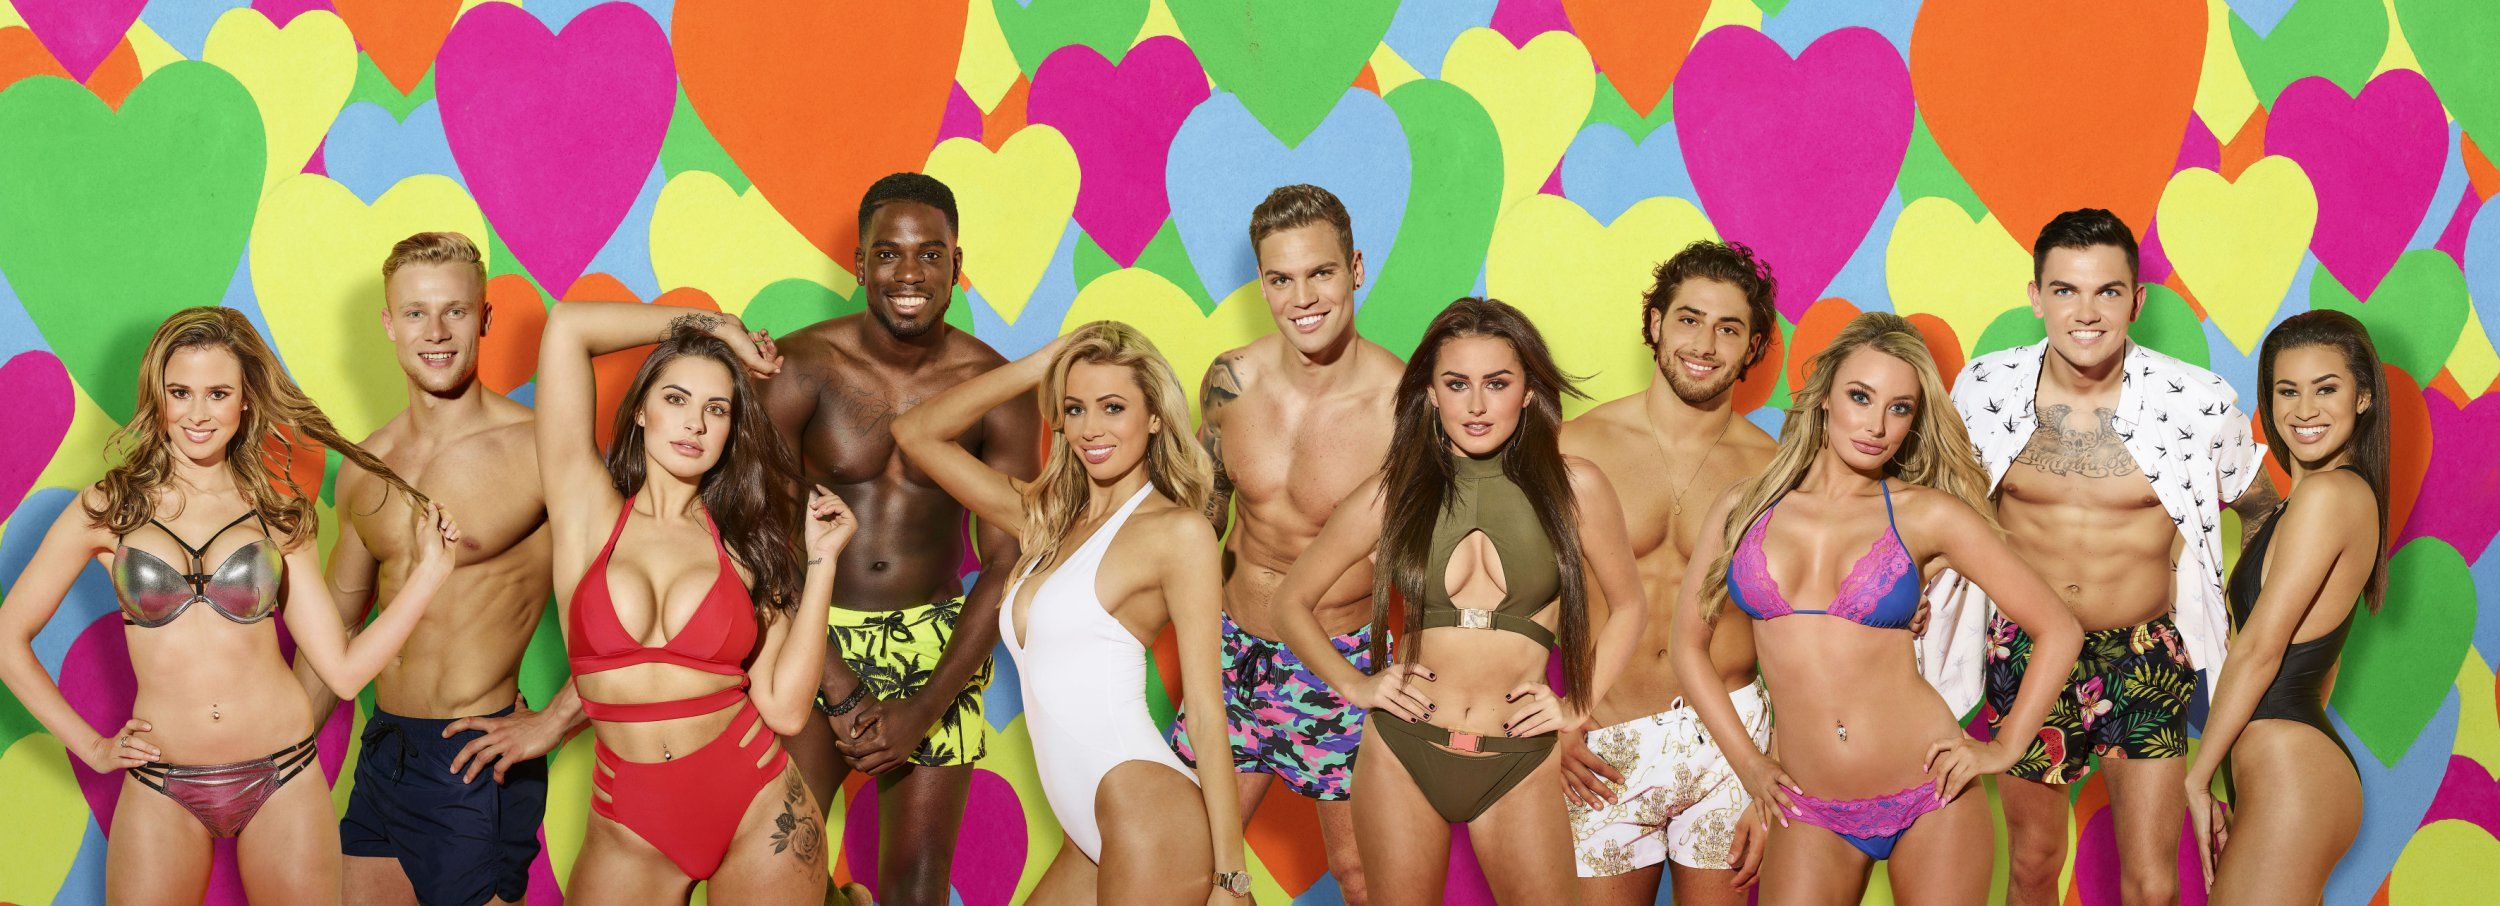 Love Island Season 3 Love Island Wiki Fandom 1) no major spoilers in post titles for 24 opinionam i the only one who thinks connagh from love island season 6 and jordan from love island season 4 literally twins (reddit.com). love island season 3 love island